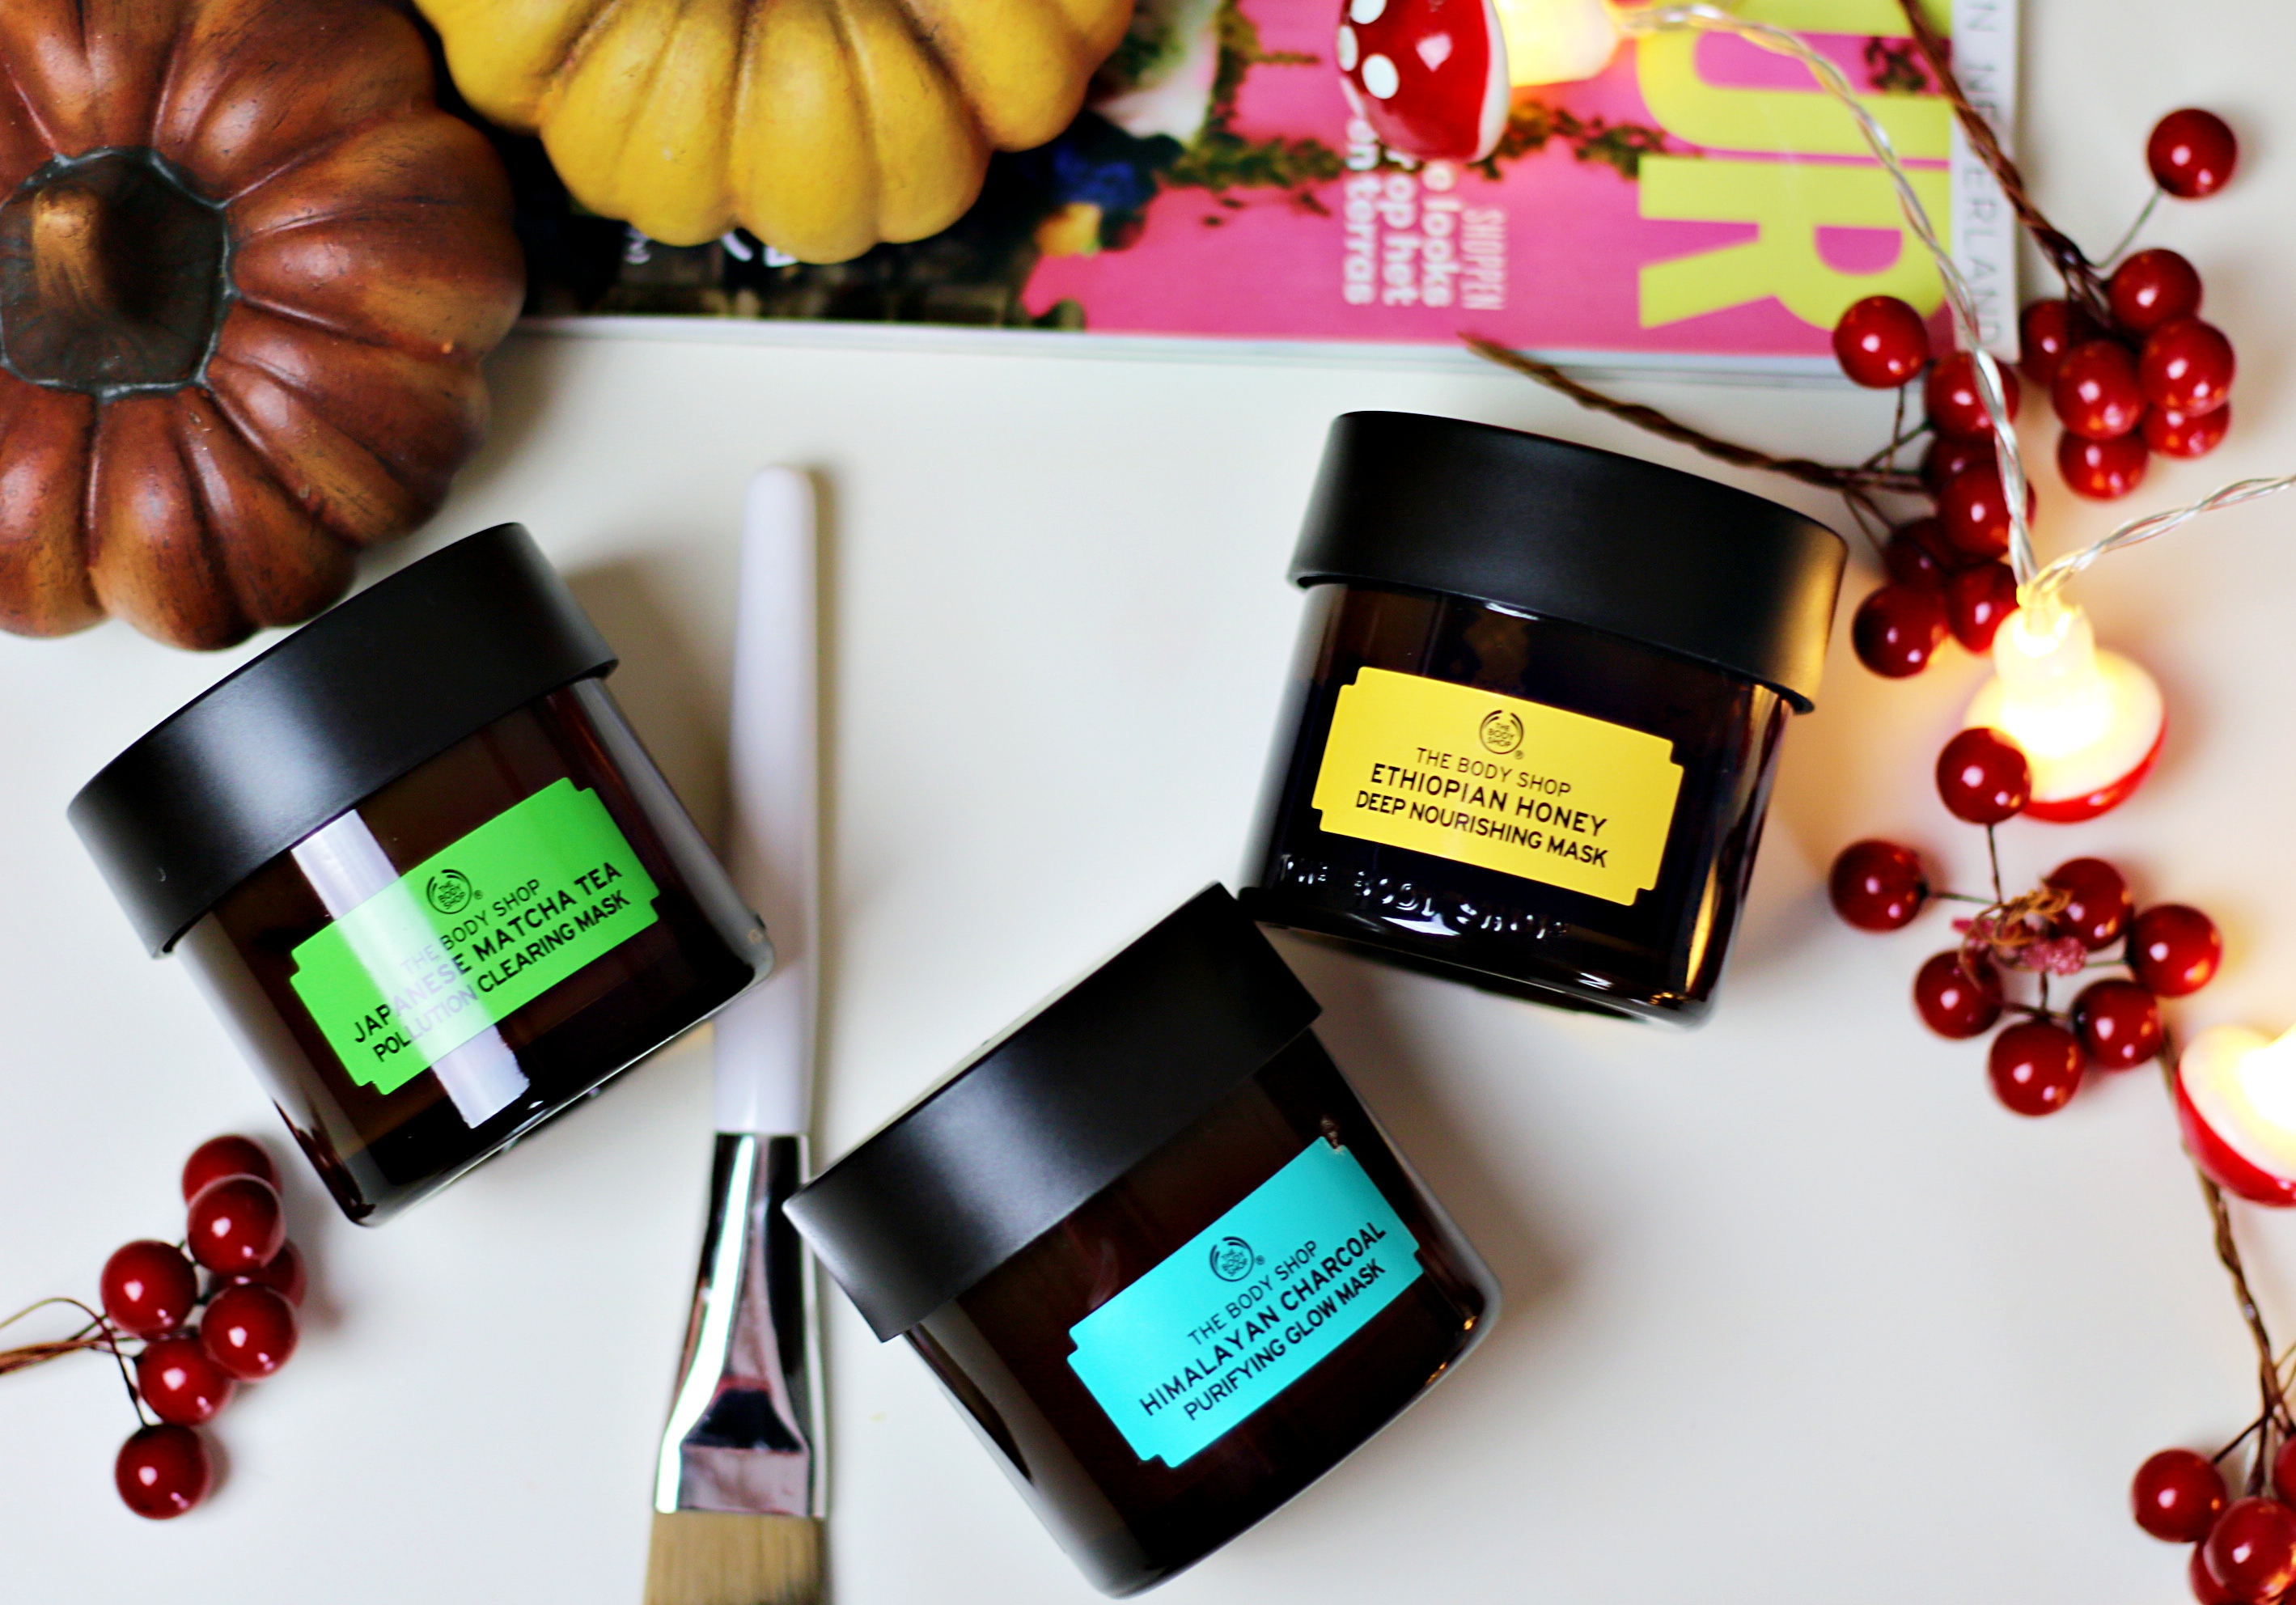 Mask It Up: 3x The Body Shop Face Masks